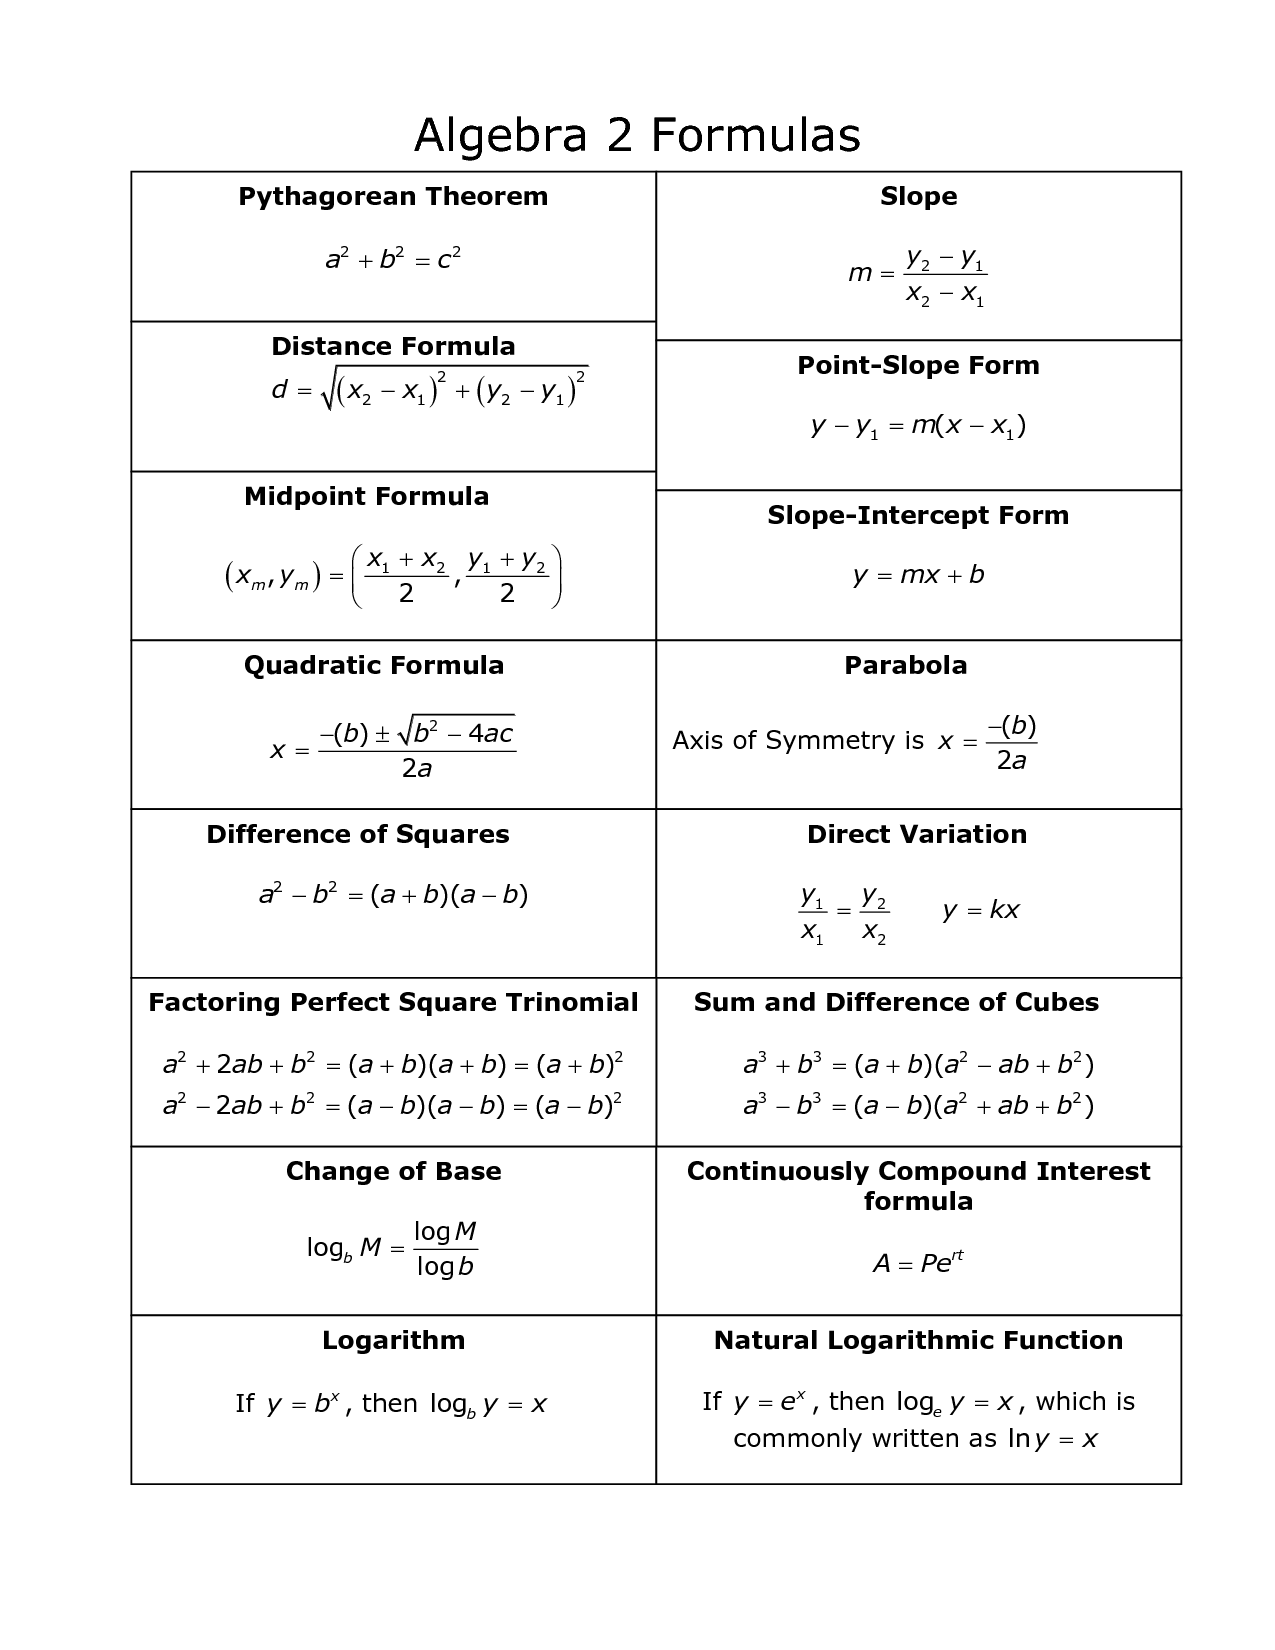 Mathematics Cheat Sheet